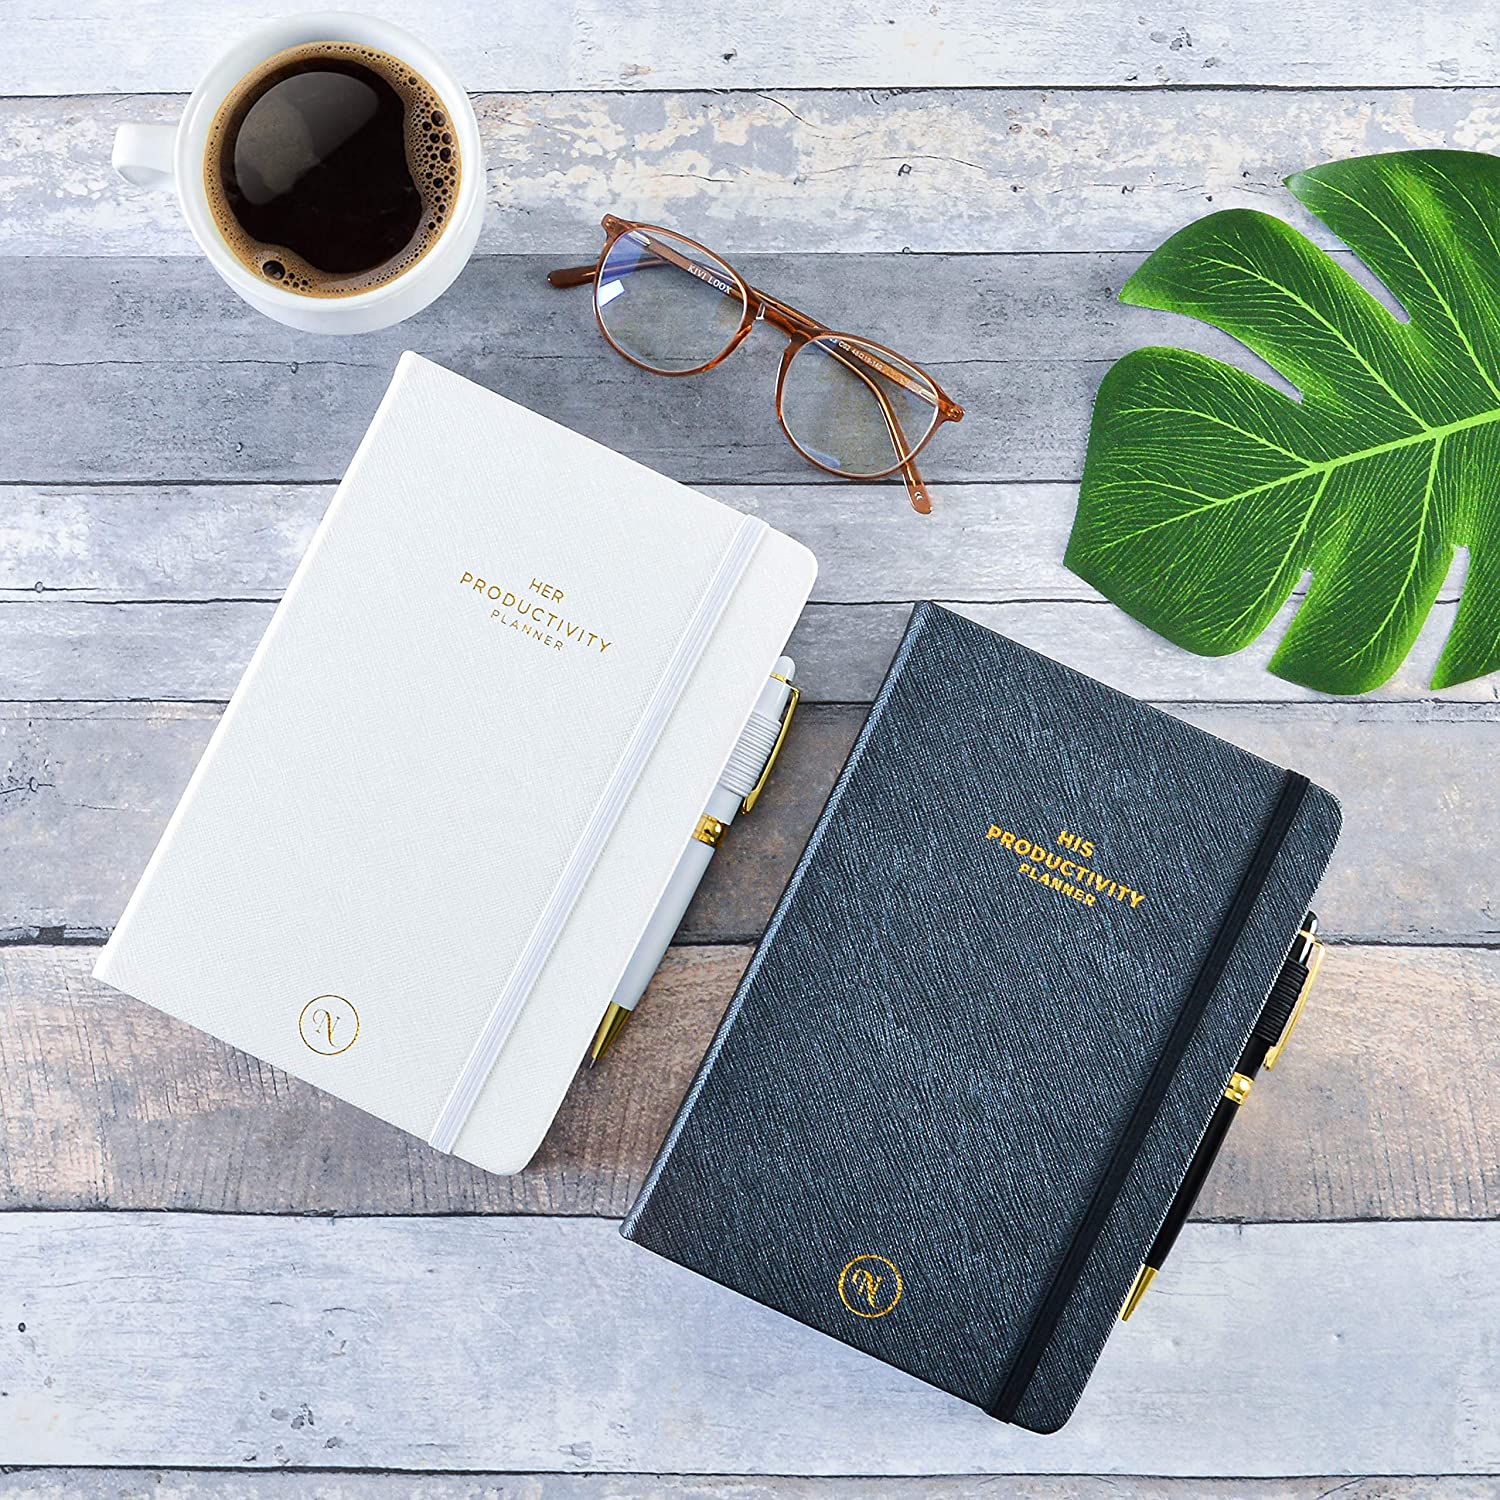 his-and-hers-gifts-planners